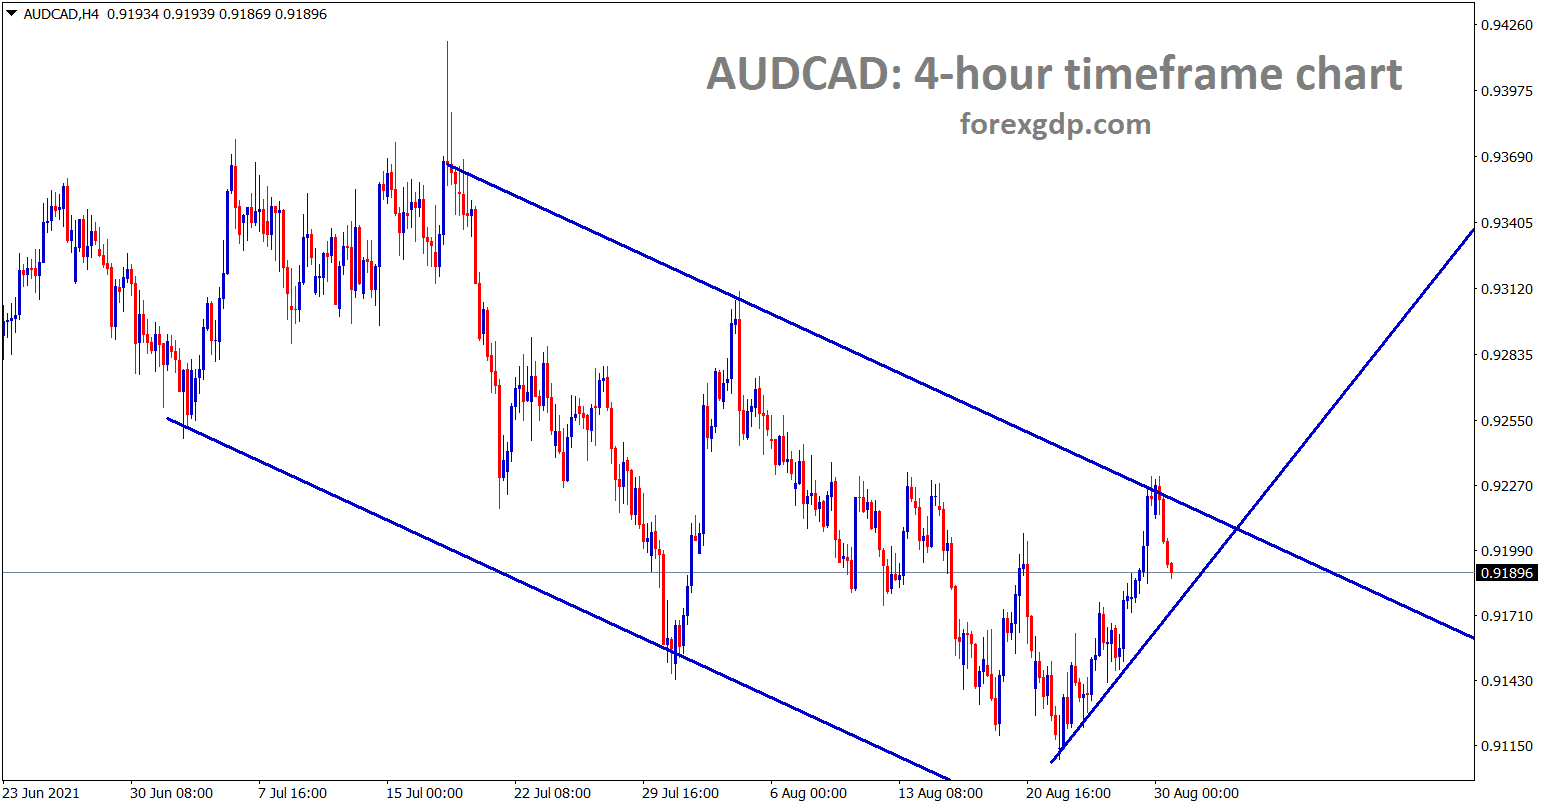 AUDCAD is making some correction from the lower high of the desending channel